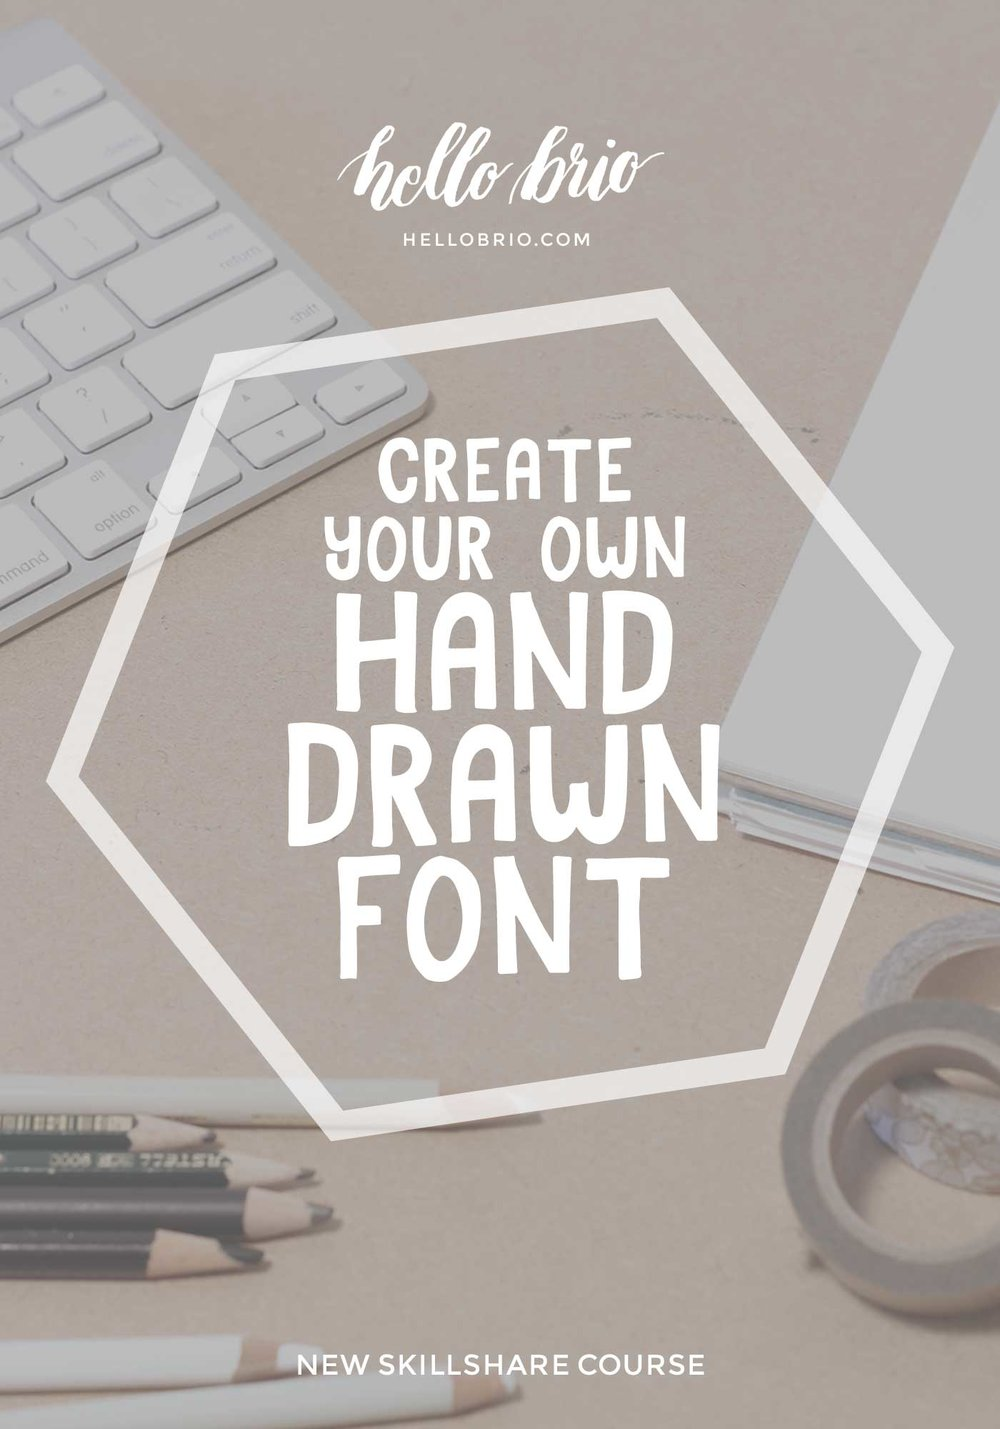 Create your own hand drawn font with Jennifer Coyle on Skillshare